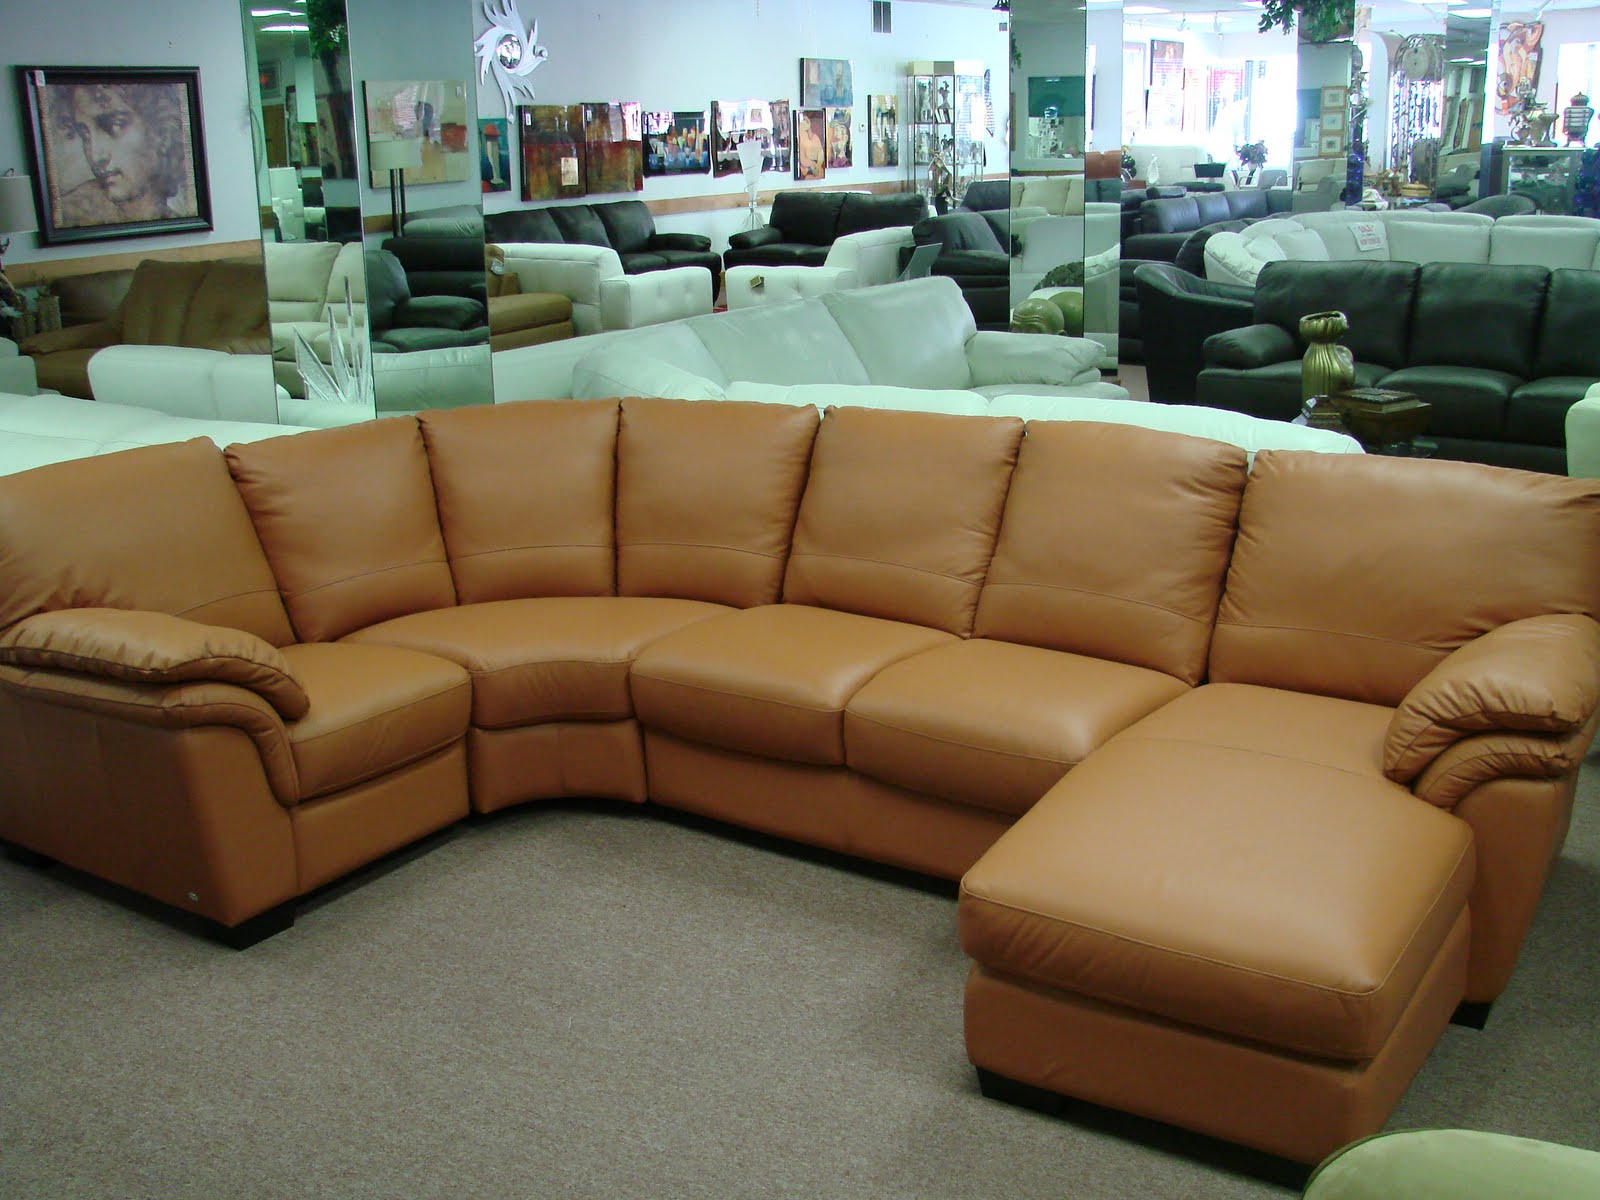 Natuzzi leather sofas sectionals by interior concepts furniture august 2011 - Sofas natuzzi ...